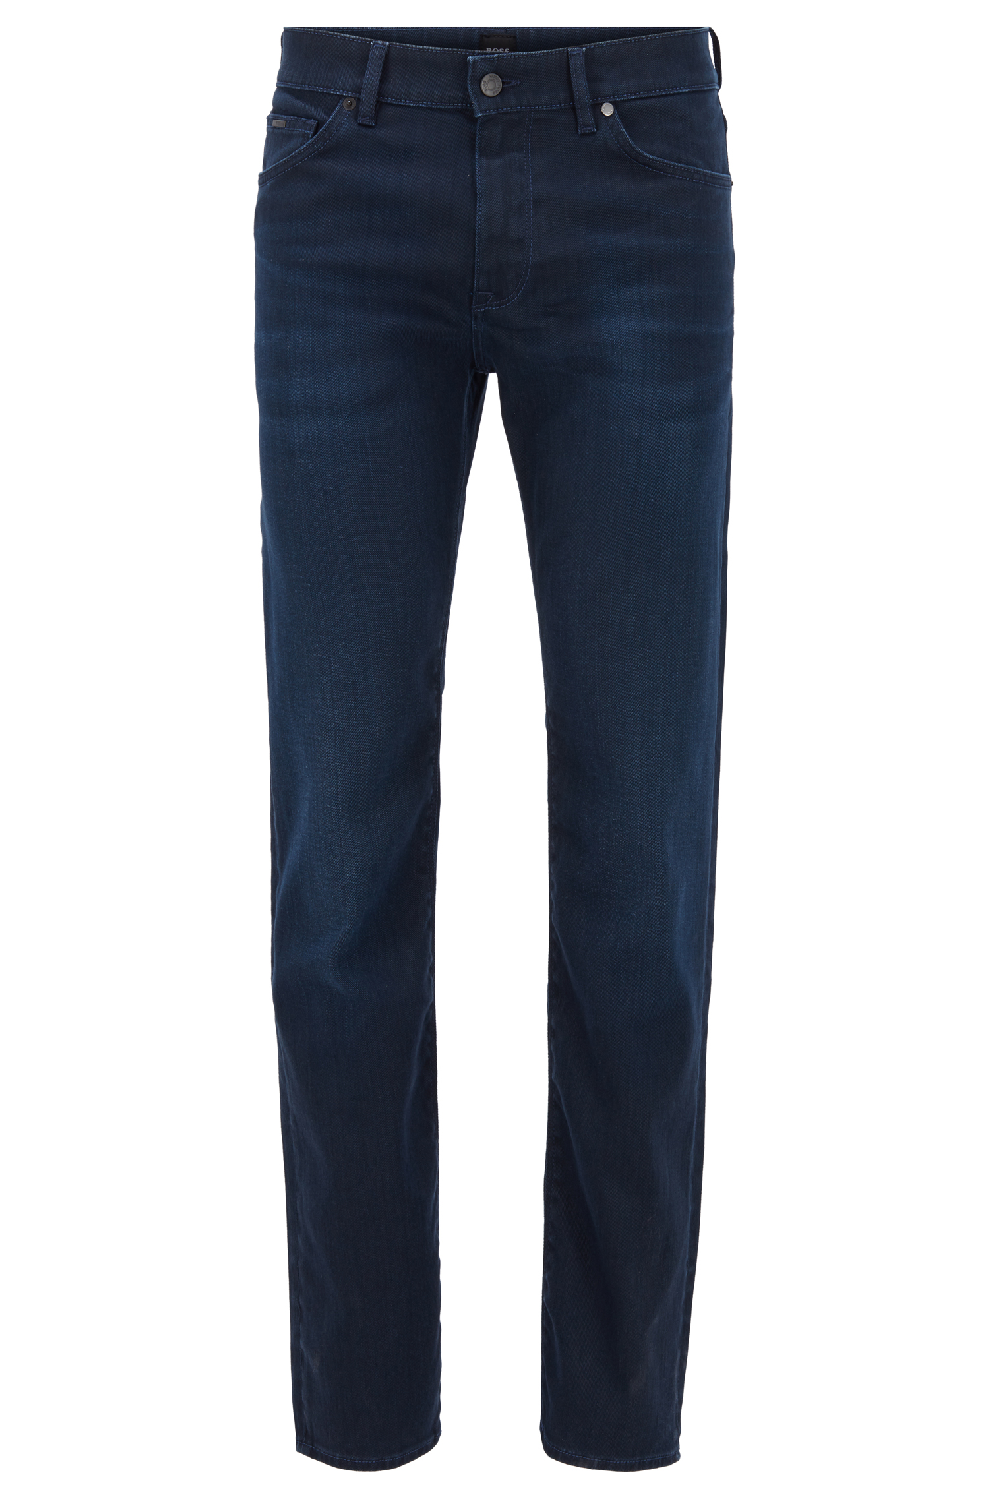 Herren Jeans Maine3 Regular Fit